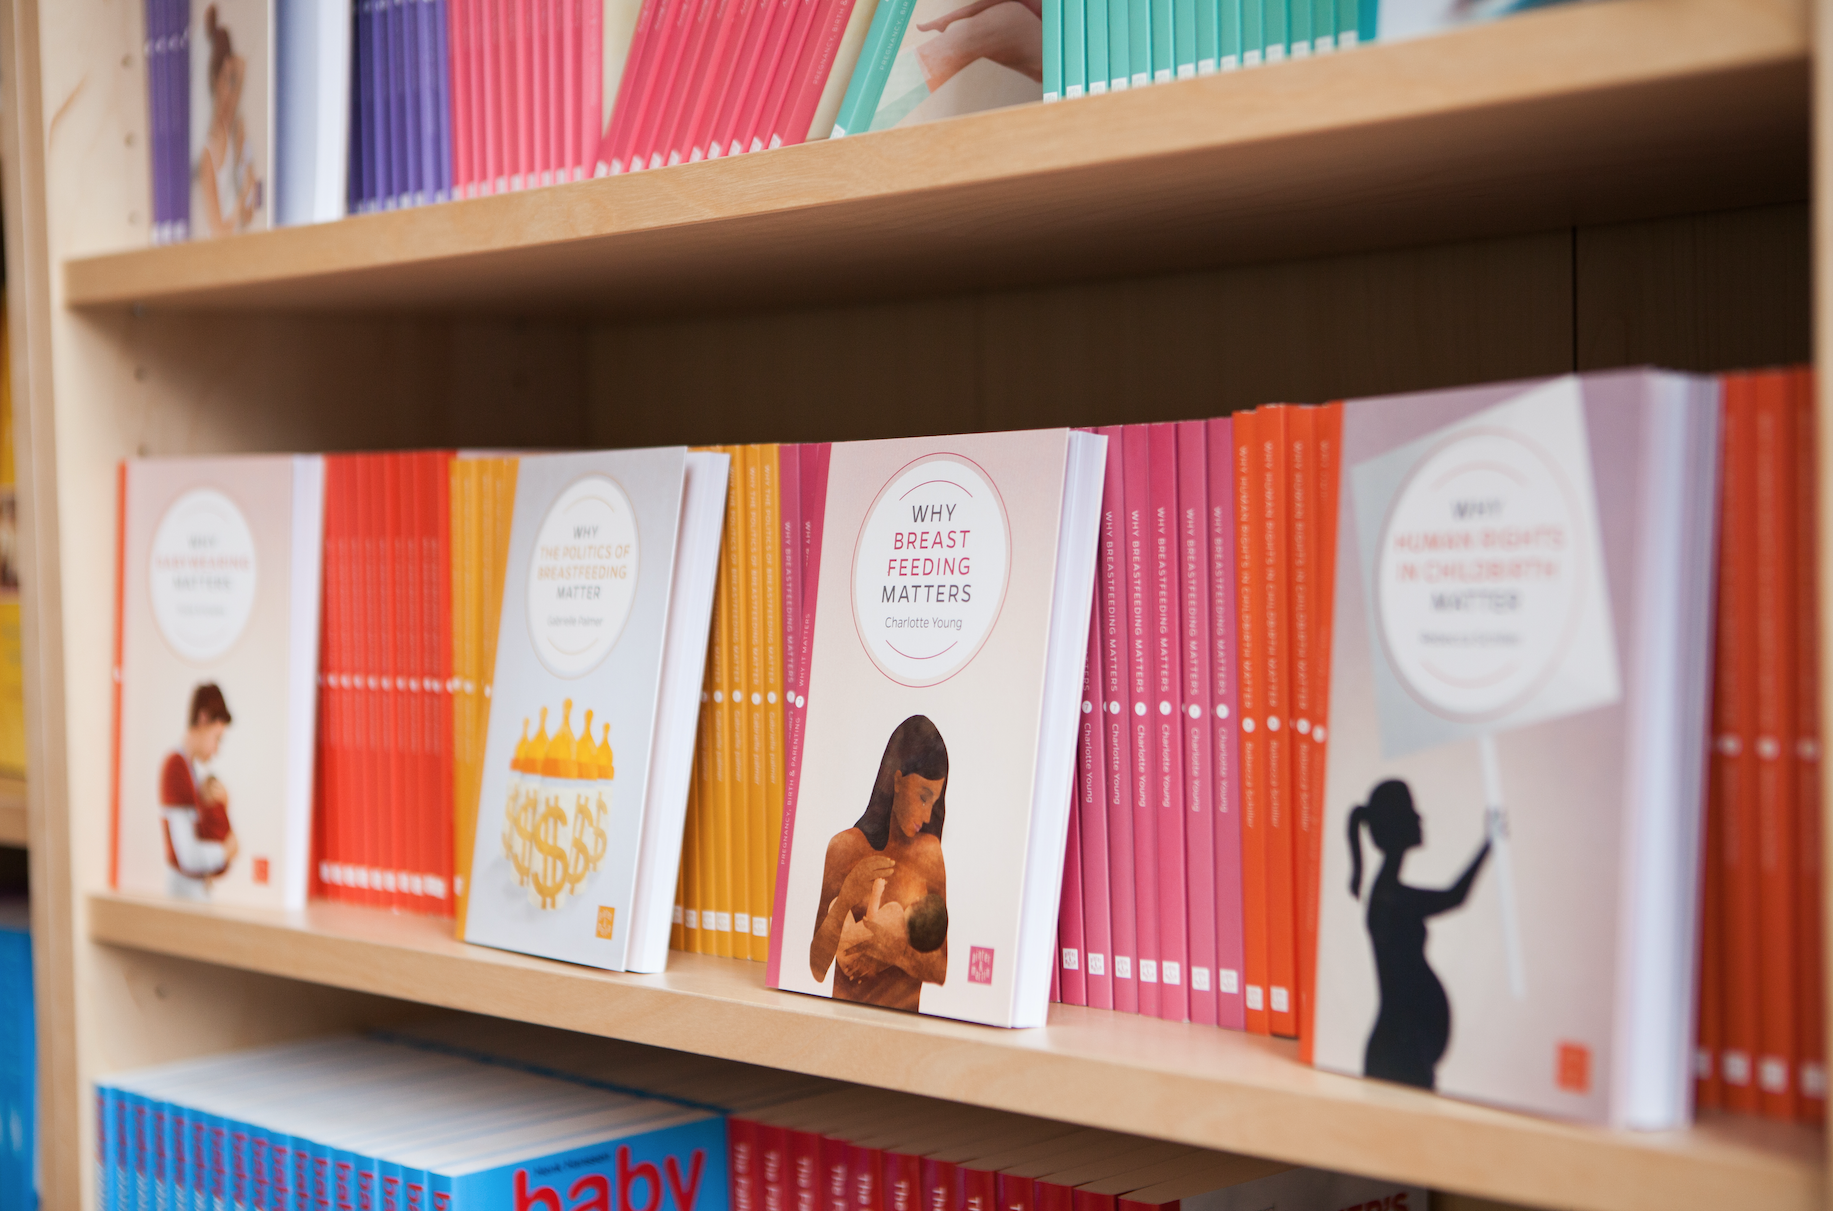 Book Launches - Our founder, Pinter & Martin, often host book launches and other pregnancy, birth and parenting-related events. Find out more here.